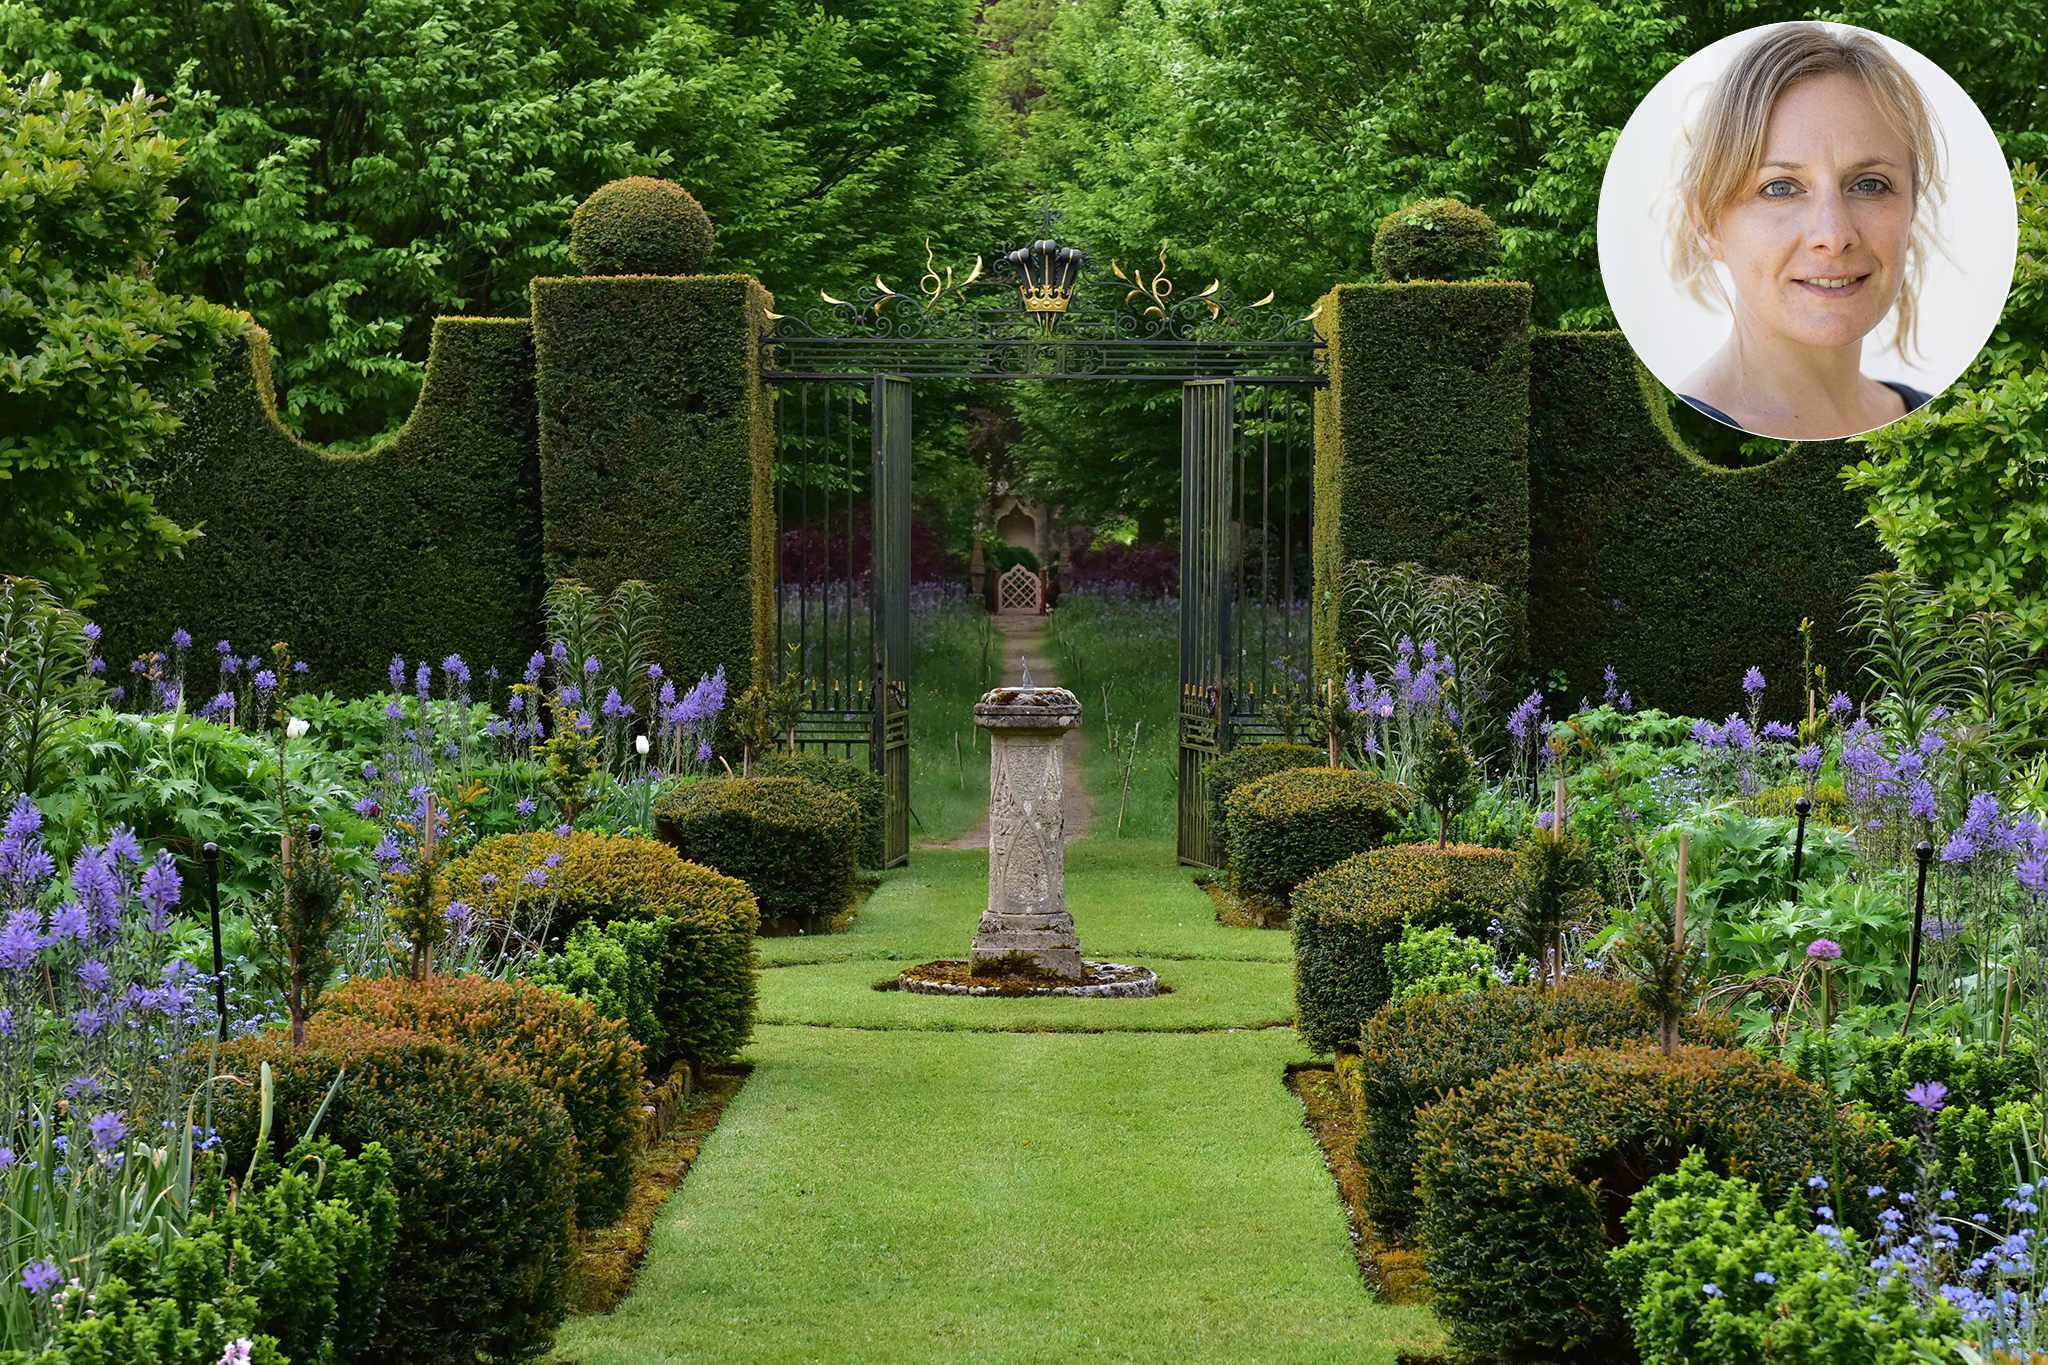 highgrove-talking-gardens-festival-kate-bradbury-2048-1365